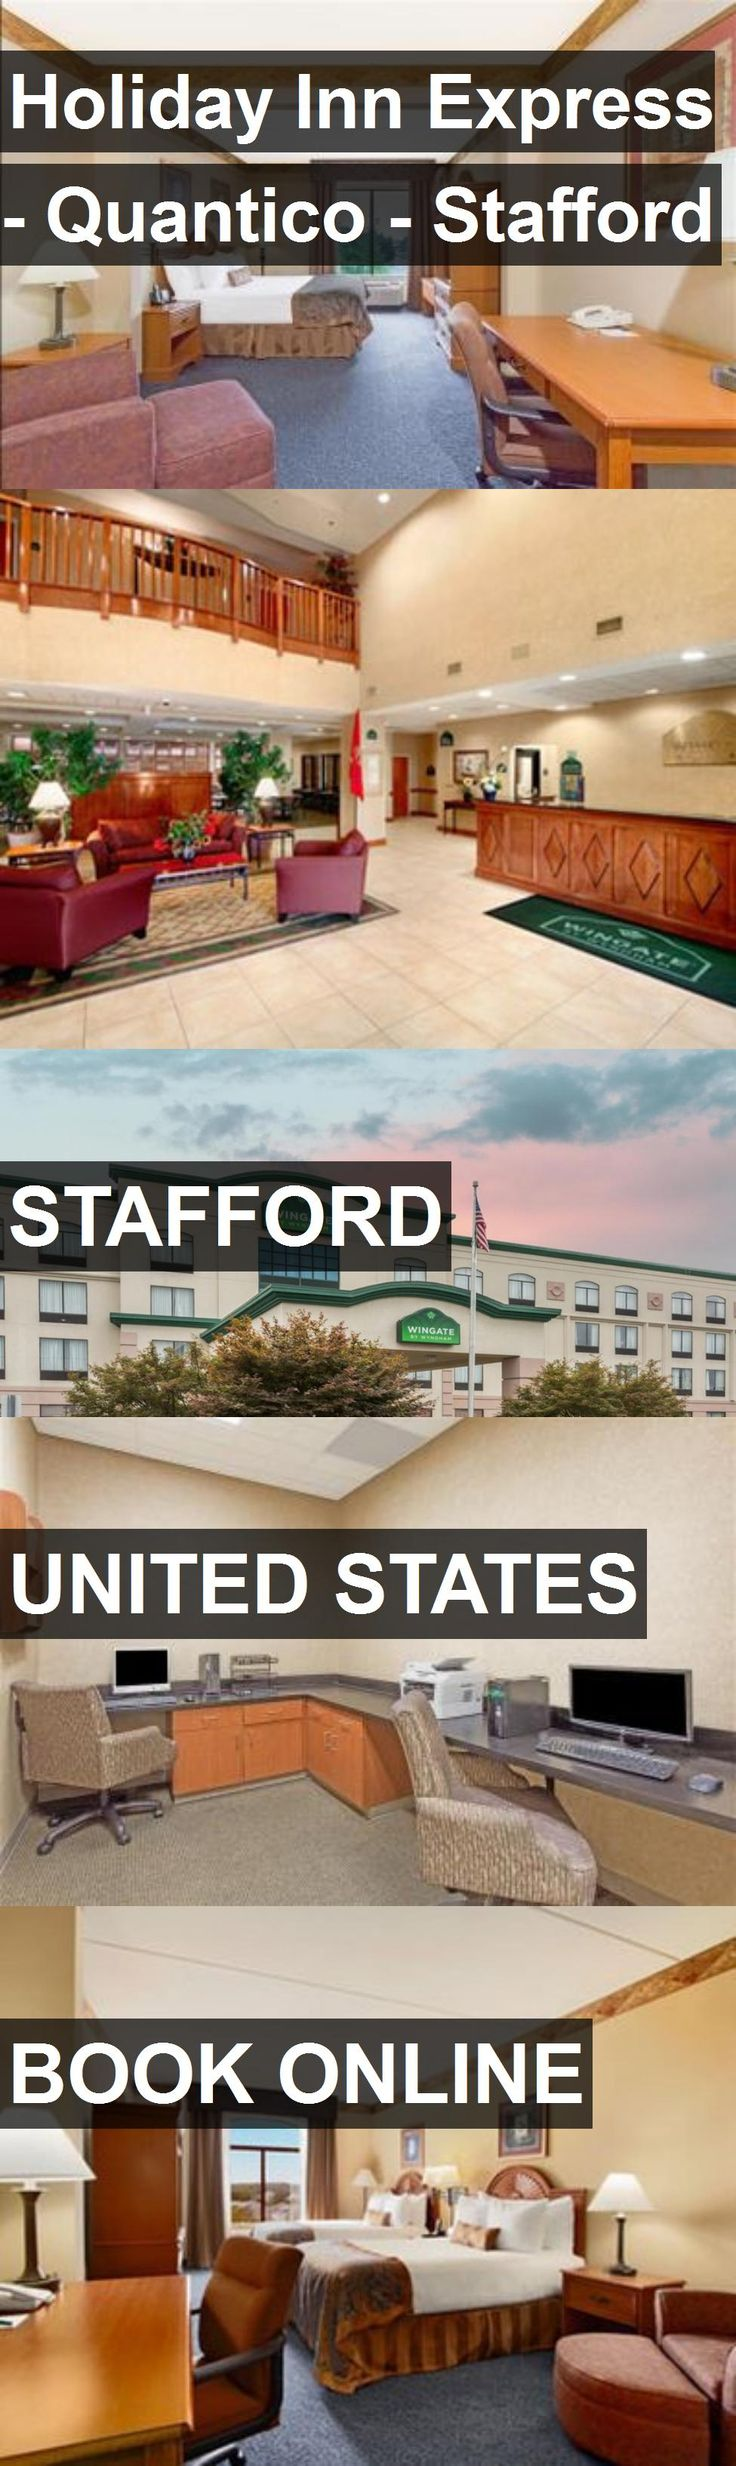 Hotel Holiday Inn Express - Quantico - Stafford in Stafford, United States. For more information, photos, reviews and best prices please follow the link. #UnitedStates #Stafford #travel #vacation #hotel